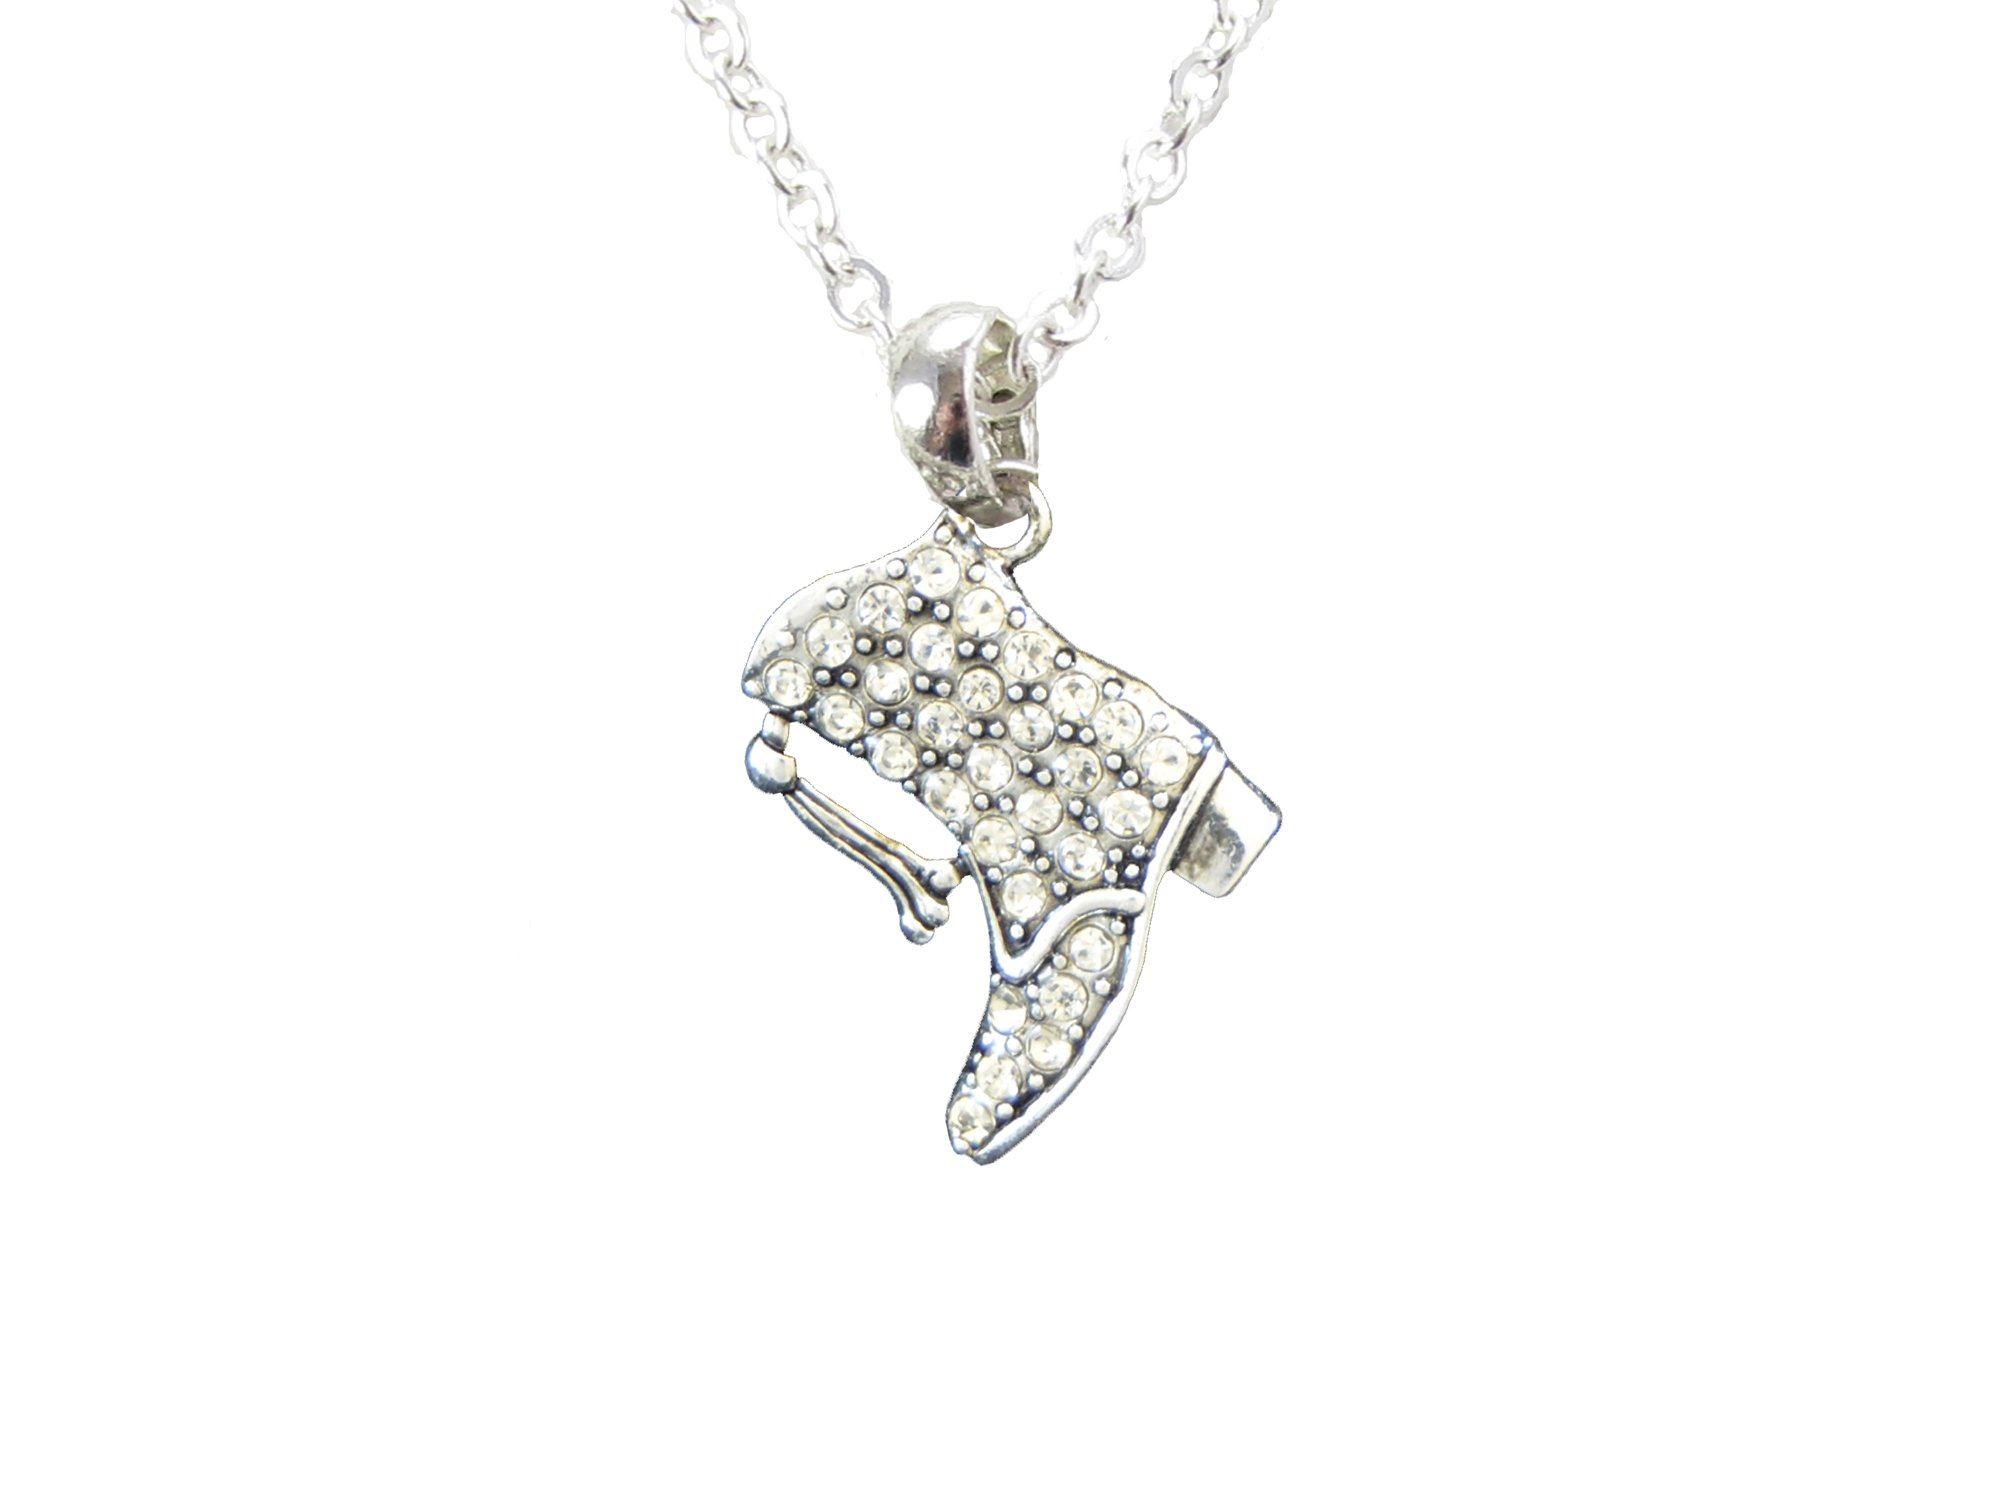 Drill Team Boot Crystal Silver Chain Necklace Jewelry Dance Pom Pep Squad